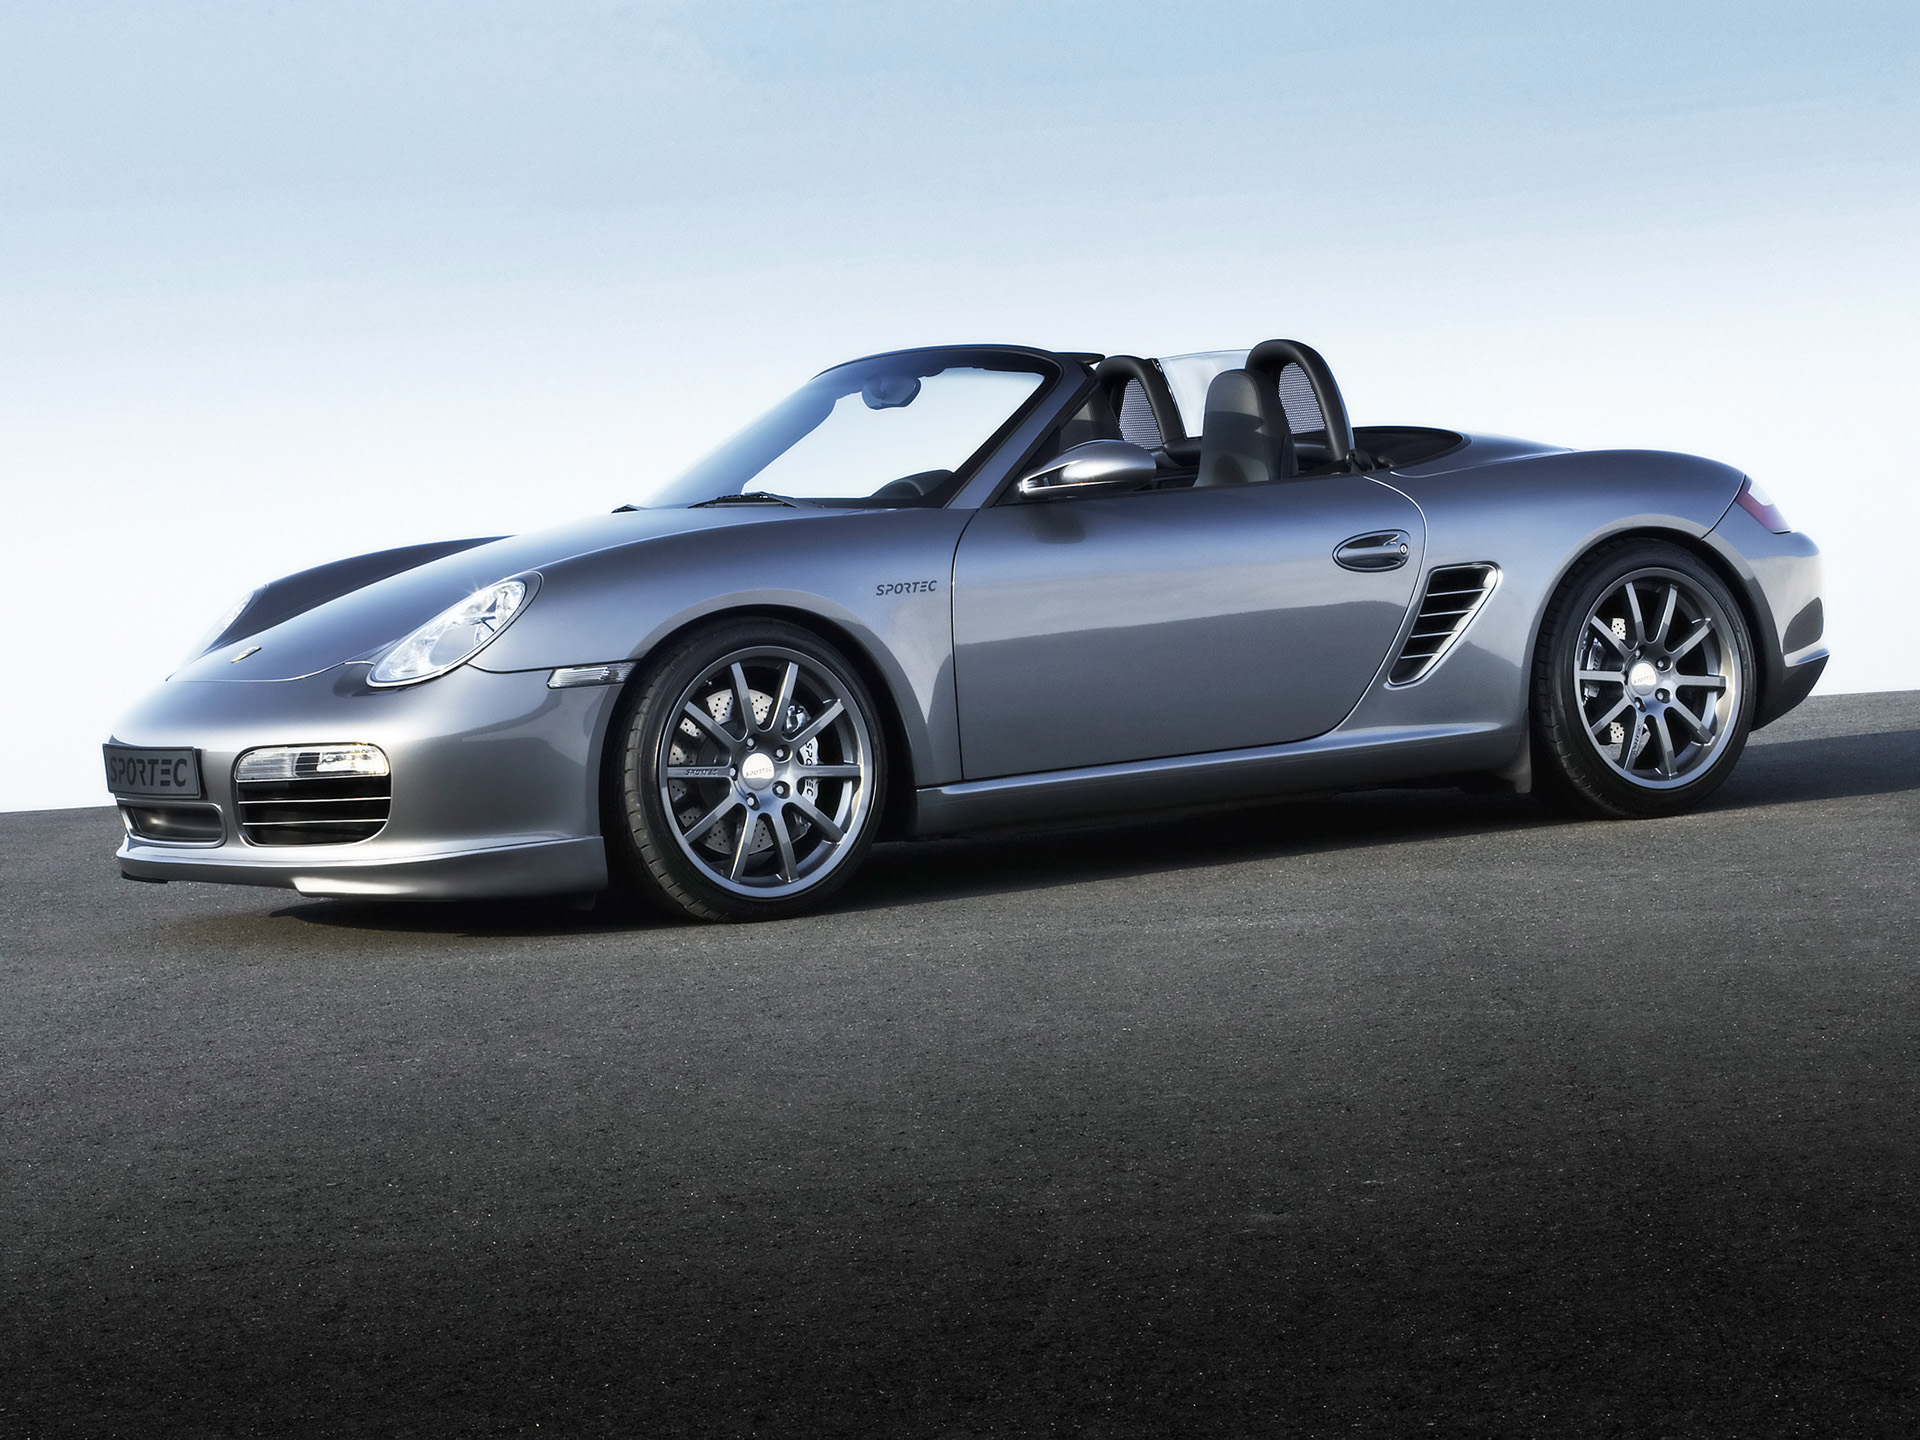 porsche boxster s 3 2 in pakistan boxster porsche boxster. Black Bedroom Furniture Sets. Home Design Ideas